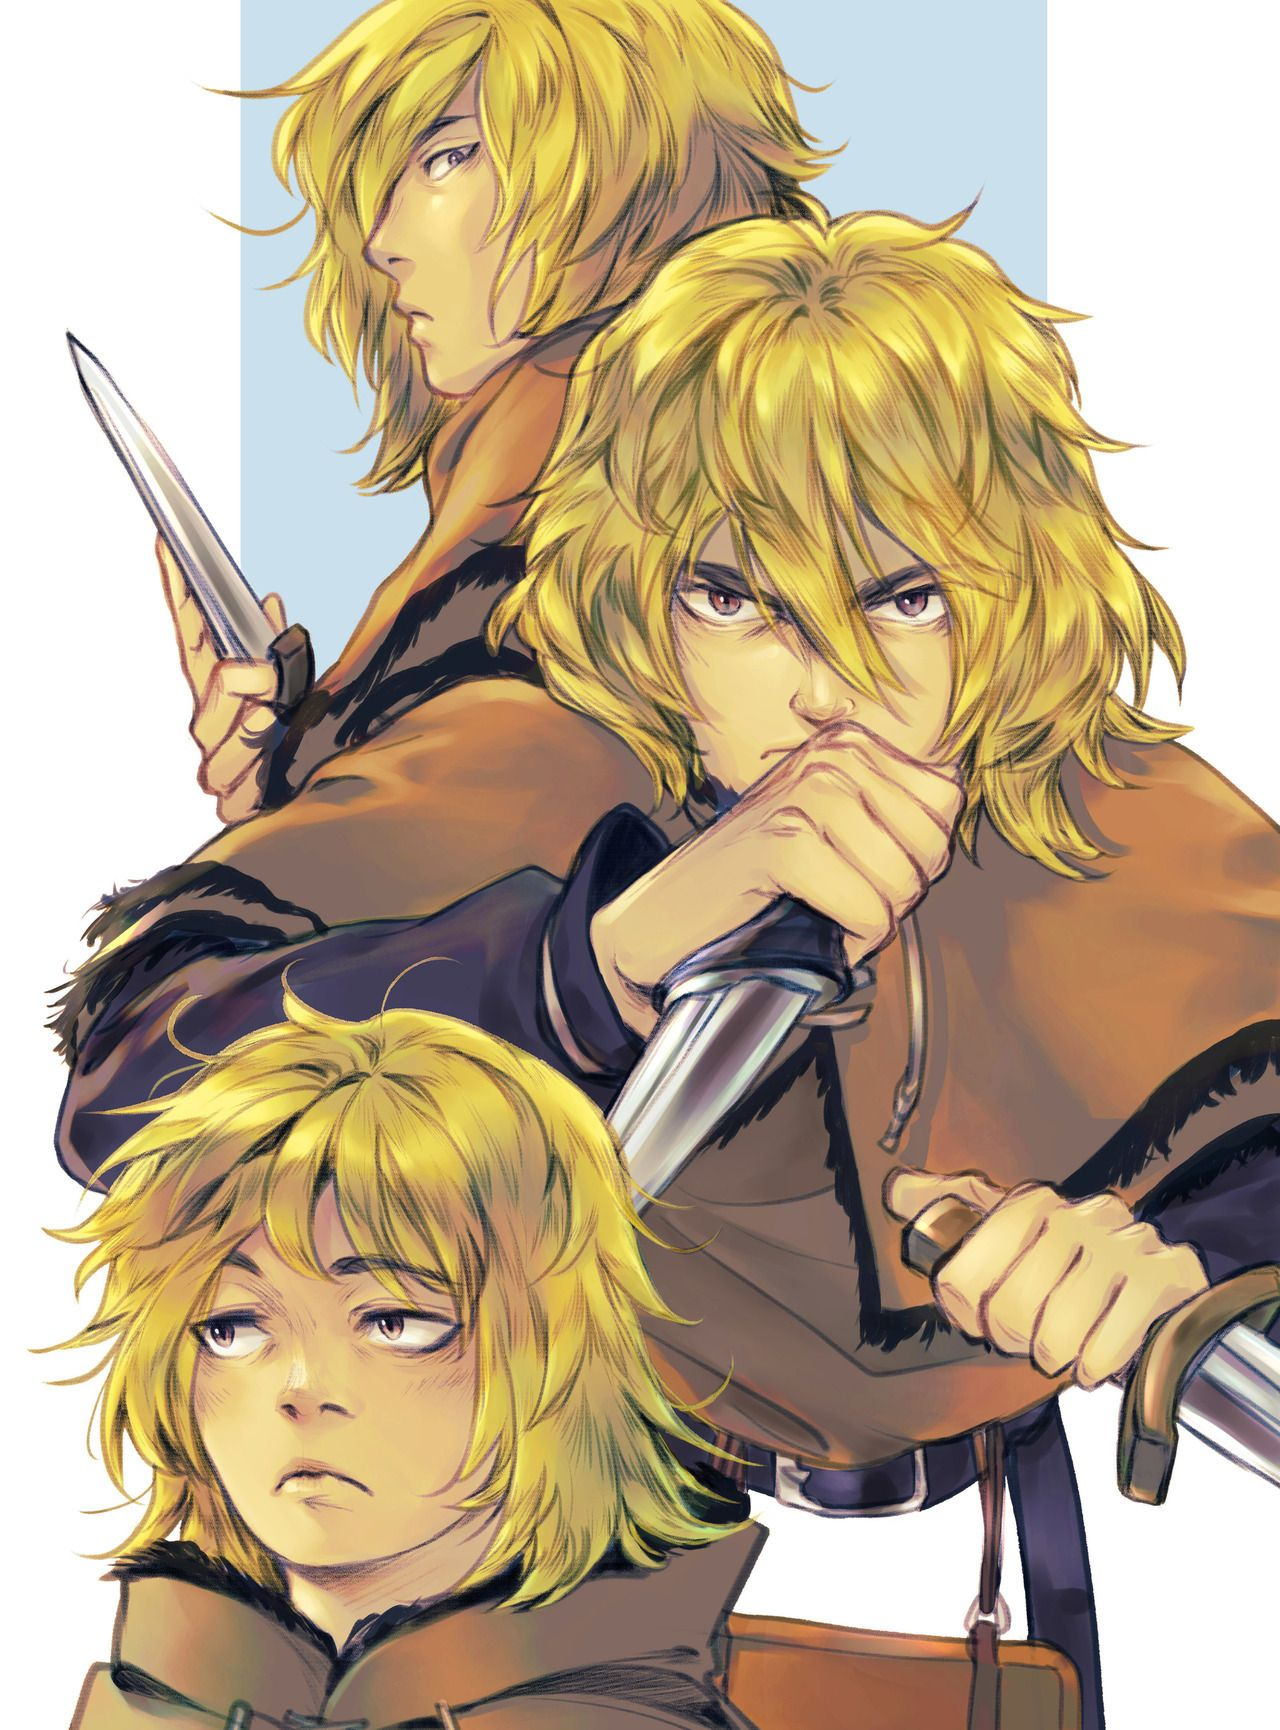 Vinland Saga anime finally airs today! (So hyped to see